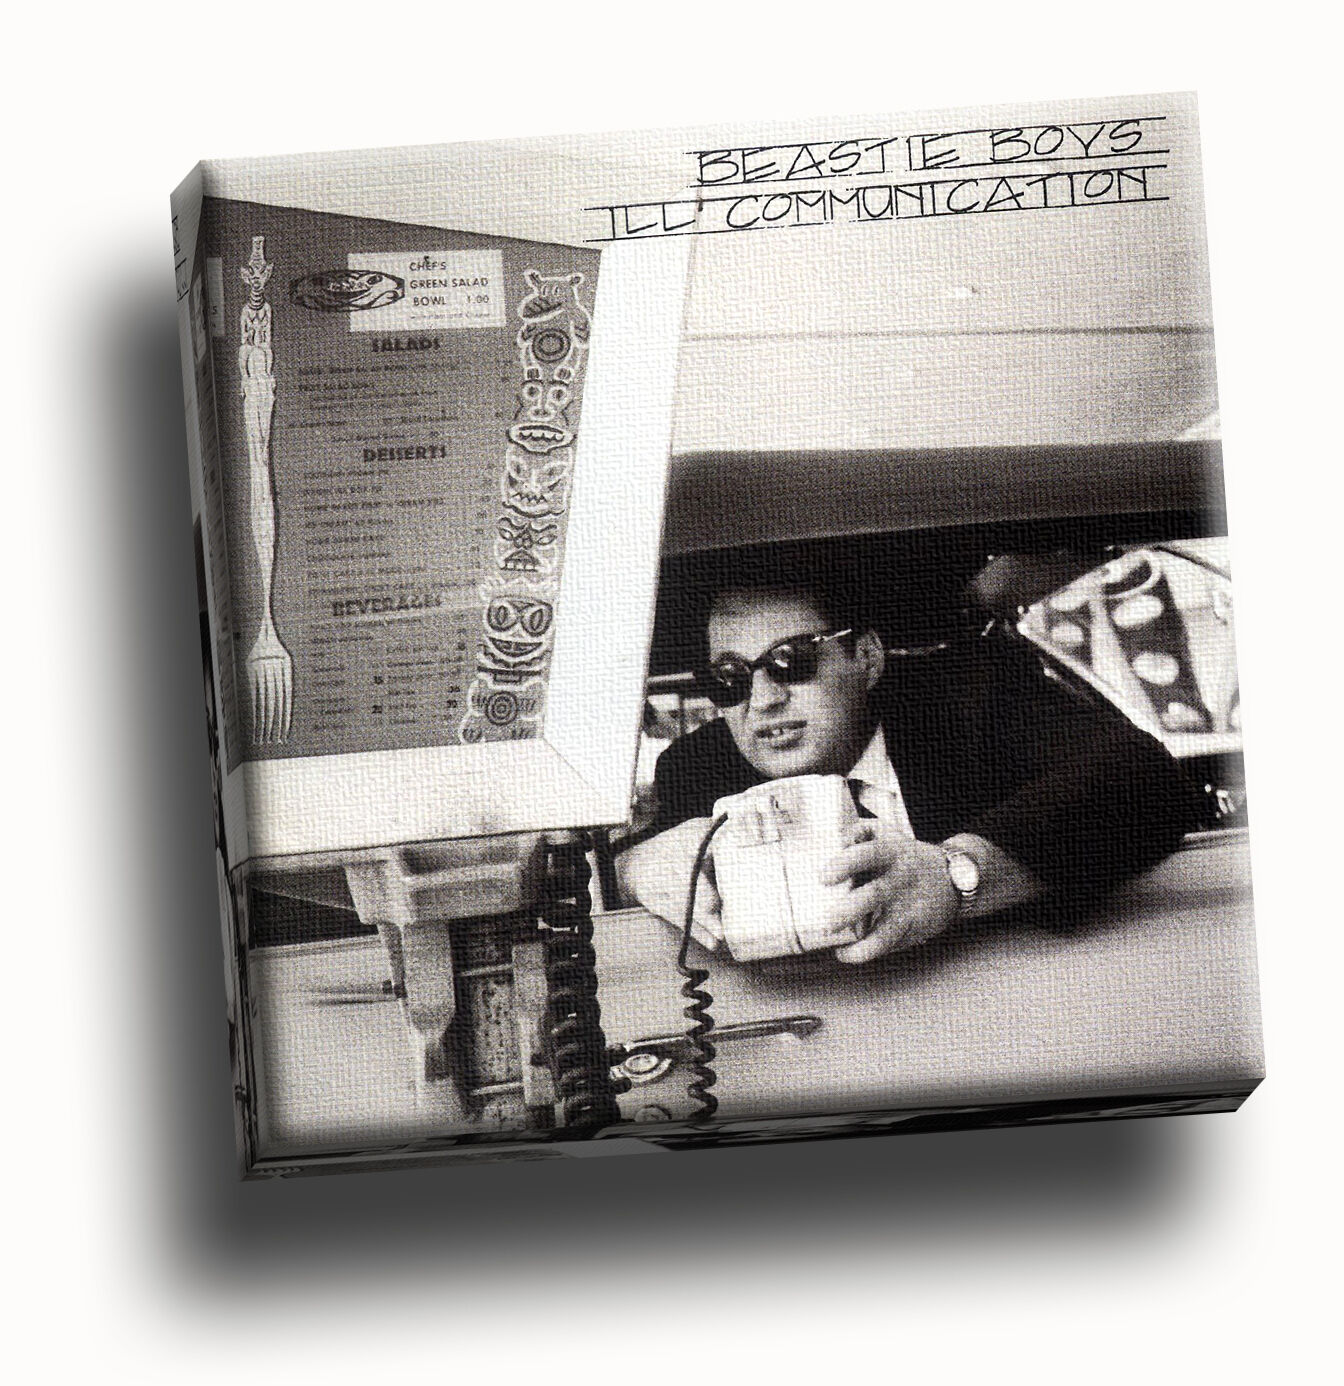 Beastie Boys - Ill Communication Giclee Canvas Album Startseite Bild Kunst